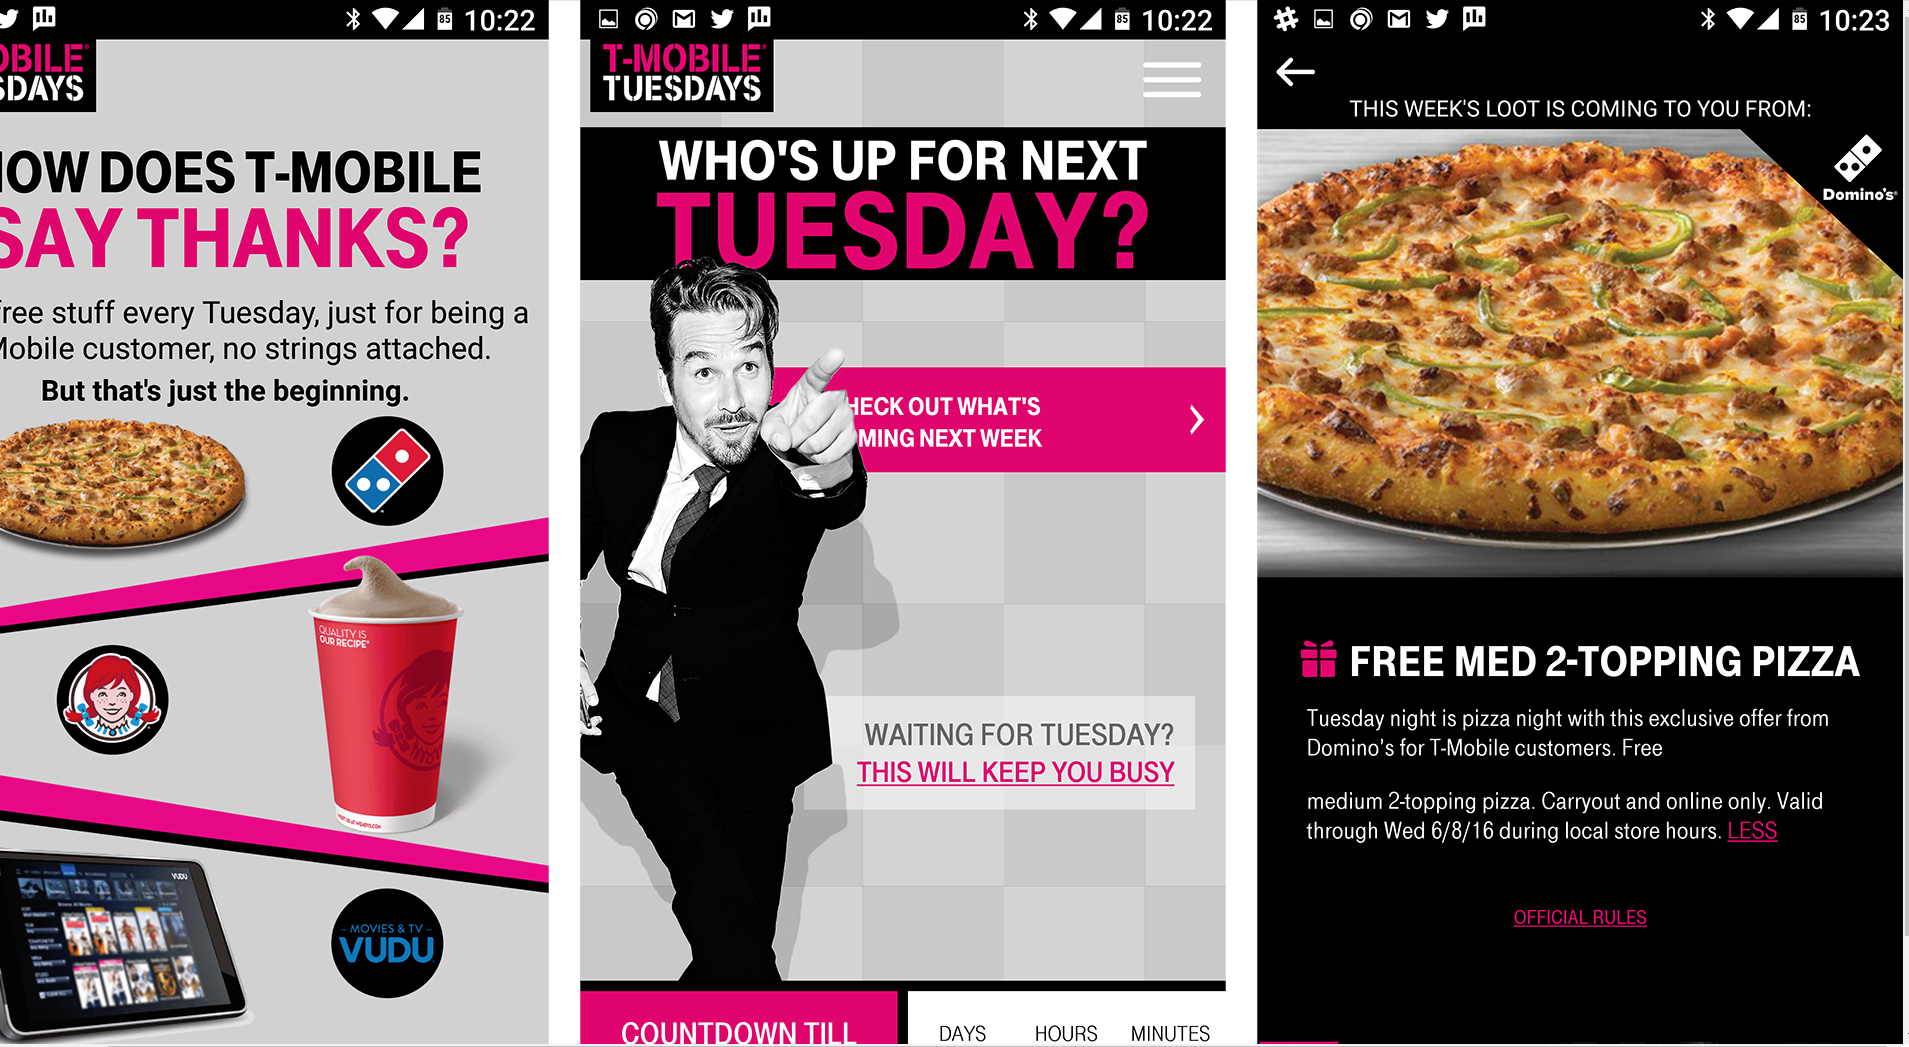 T-Mobile offers free stock, pizza, movie rentals, and more